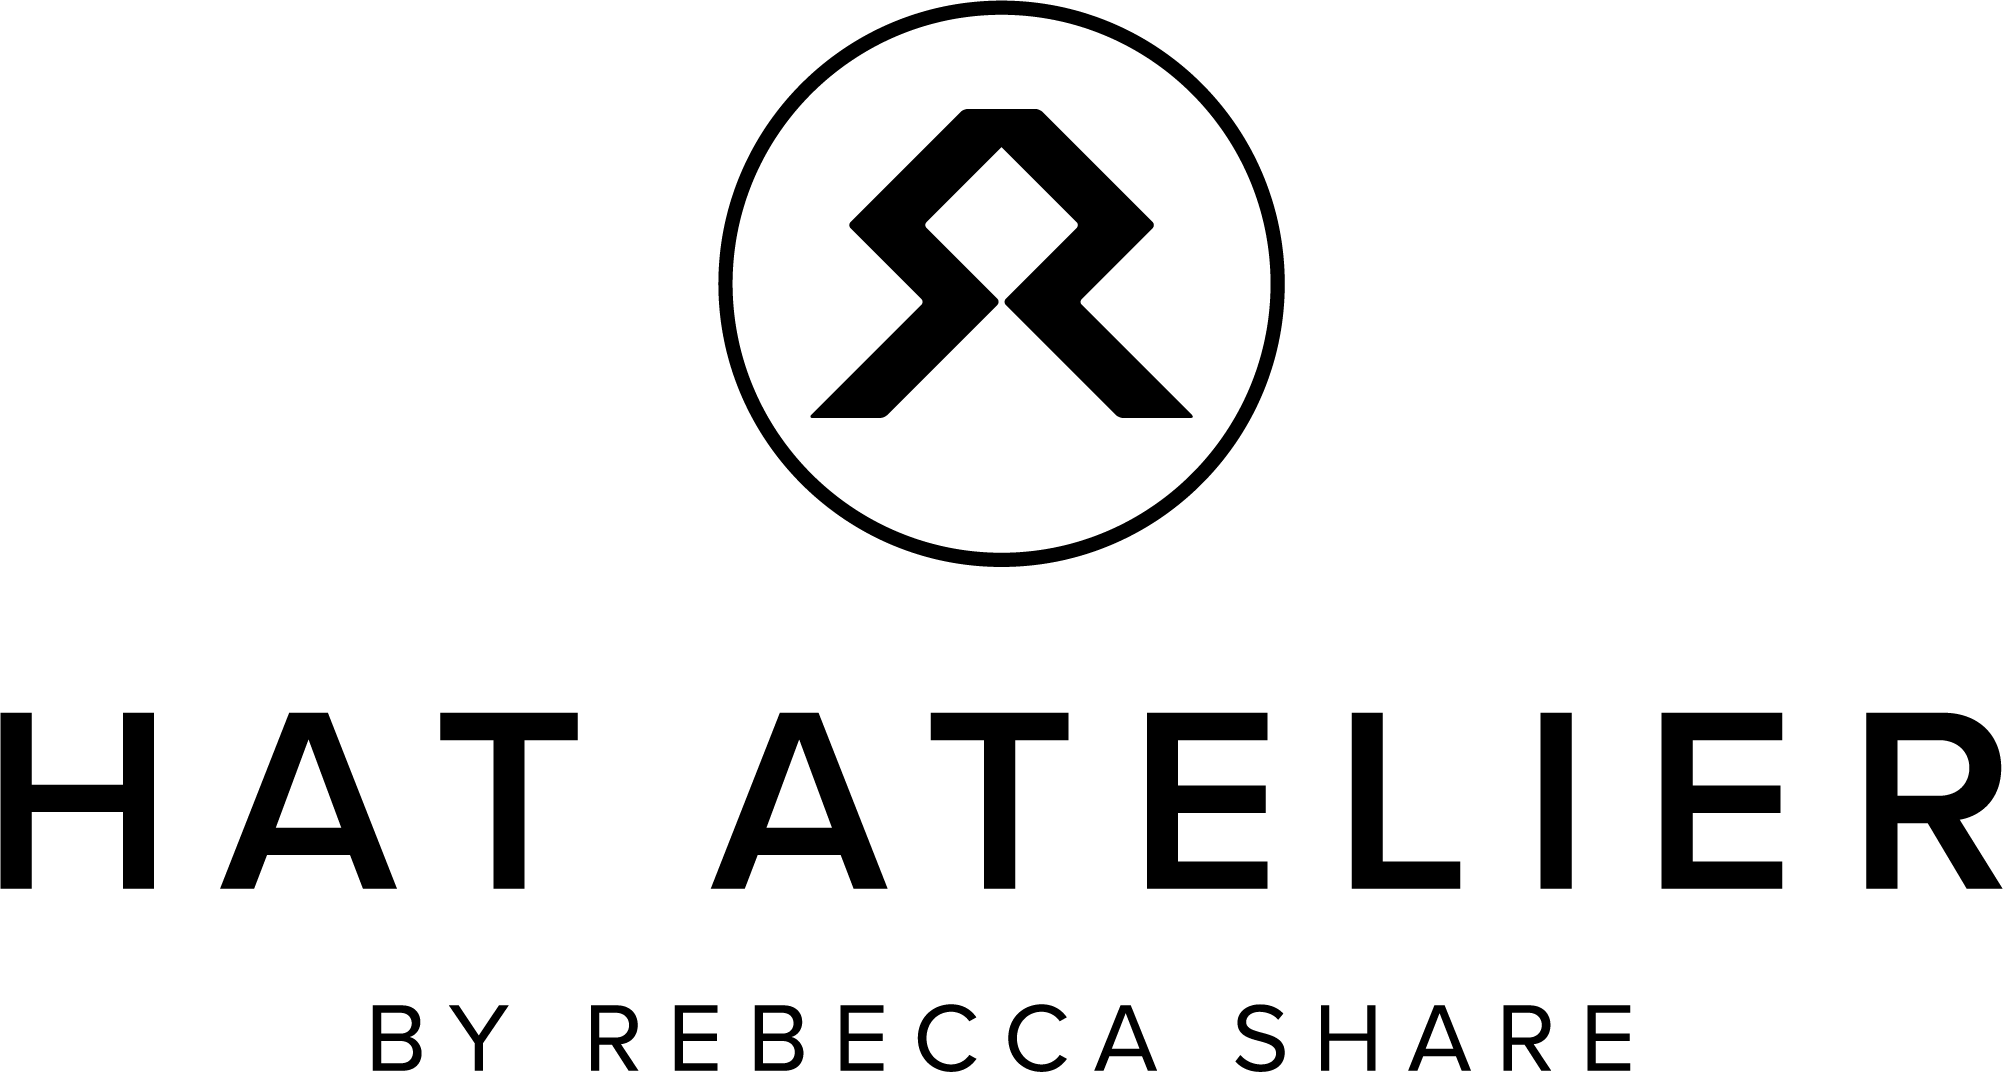 Hat Atelier Millinery Courses By Rebecca Share Logo